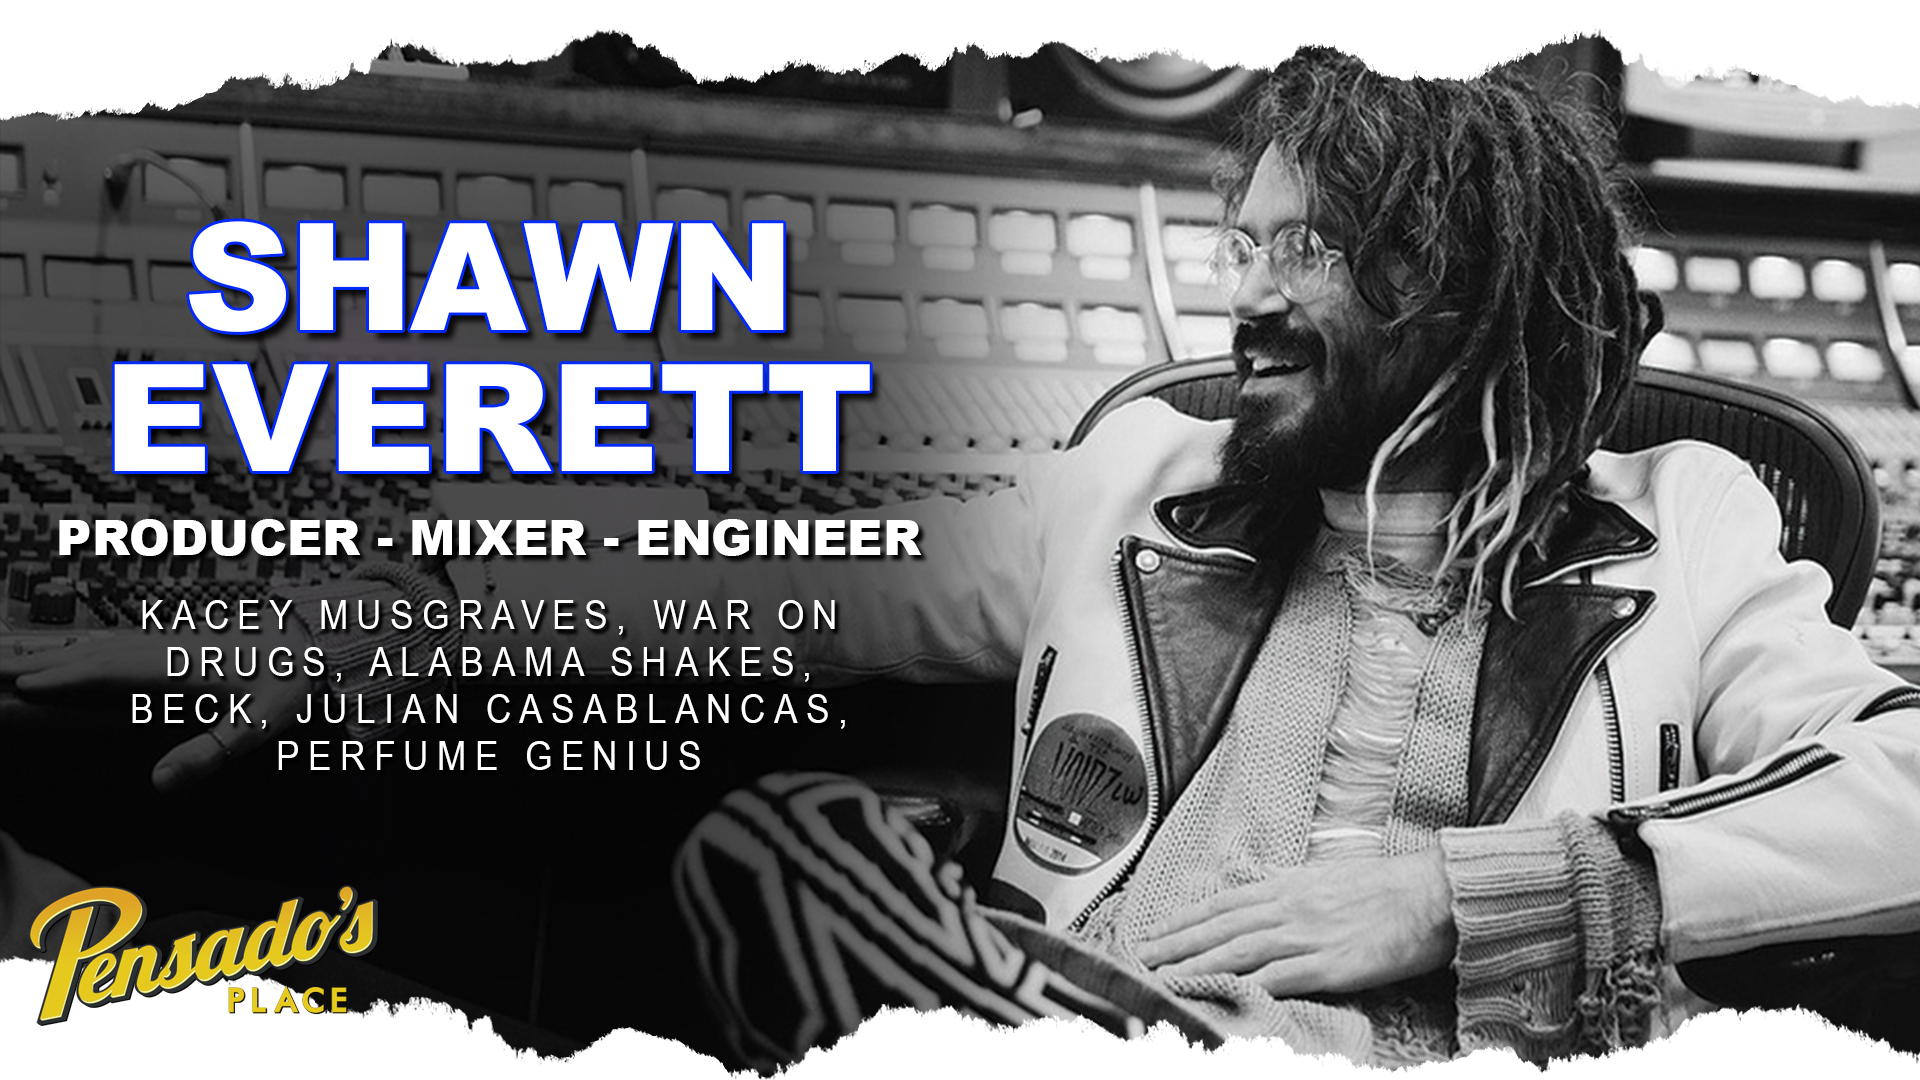 Alabama Shakes Producer / Mixer / Engineer, Shawn Everett